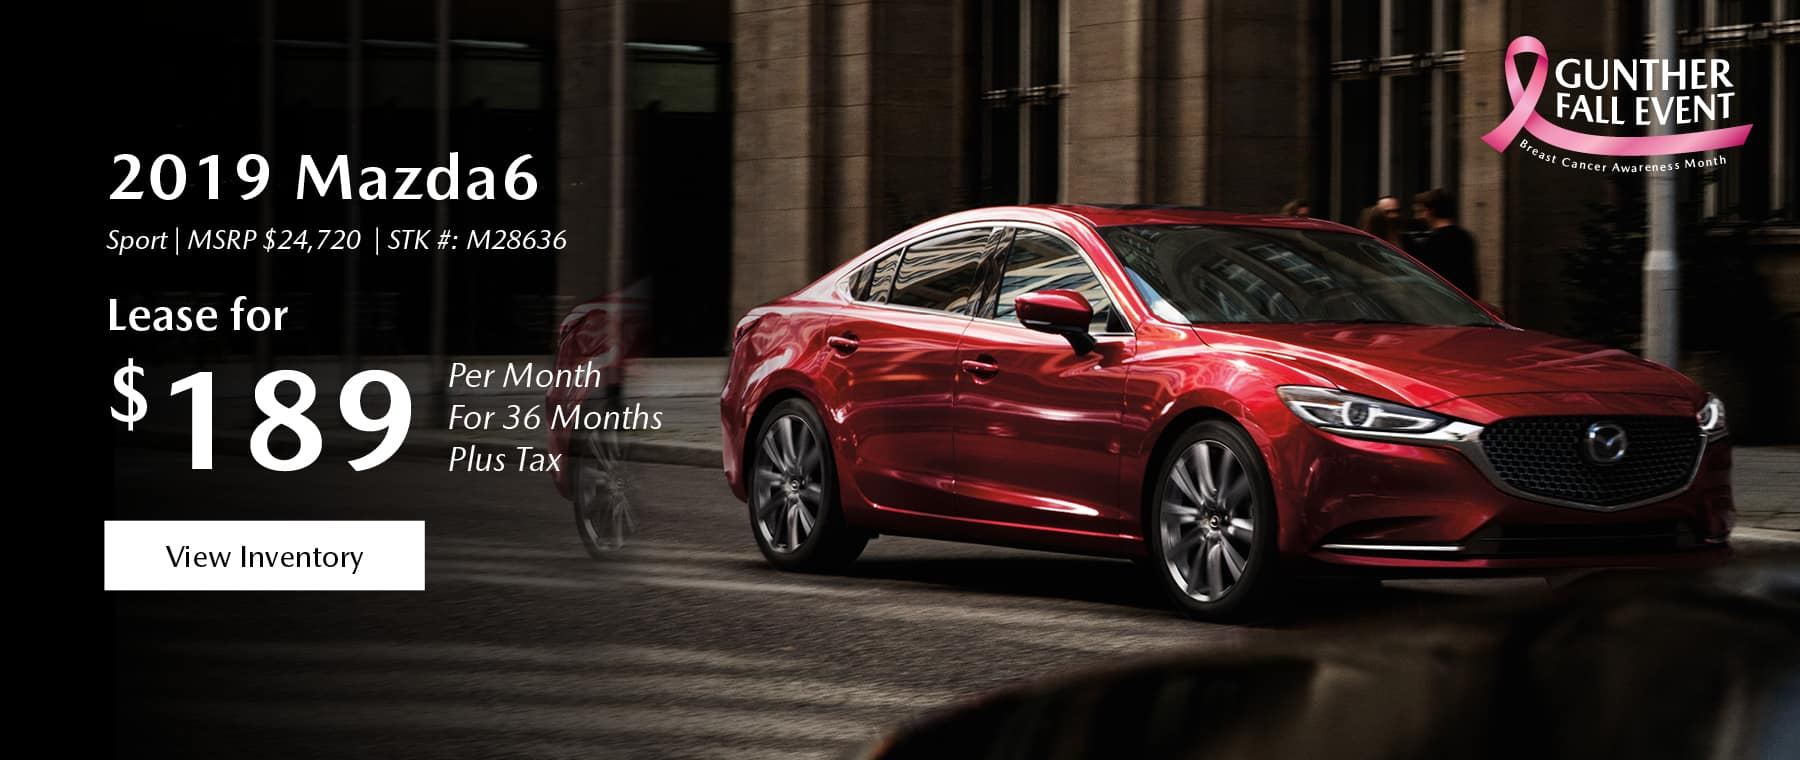 Lease the 2019 Mazda6 for $189 per month, plus tax.